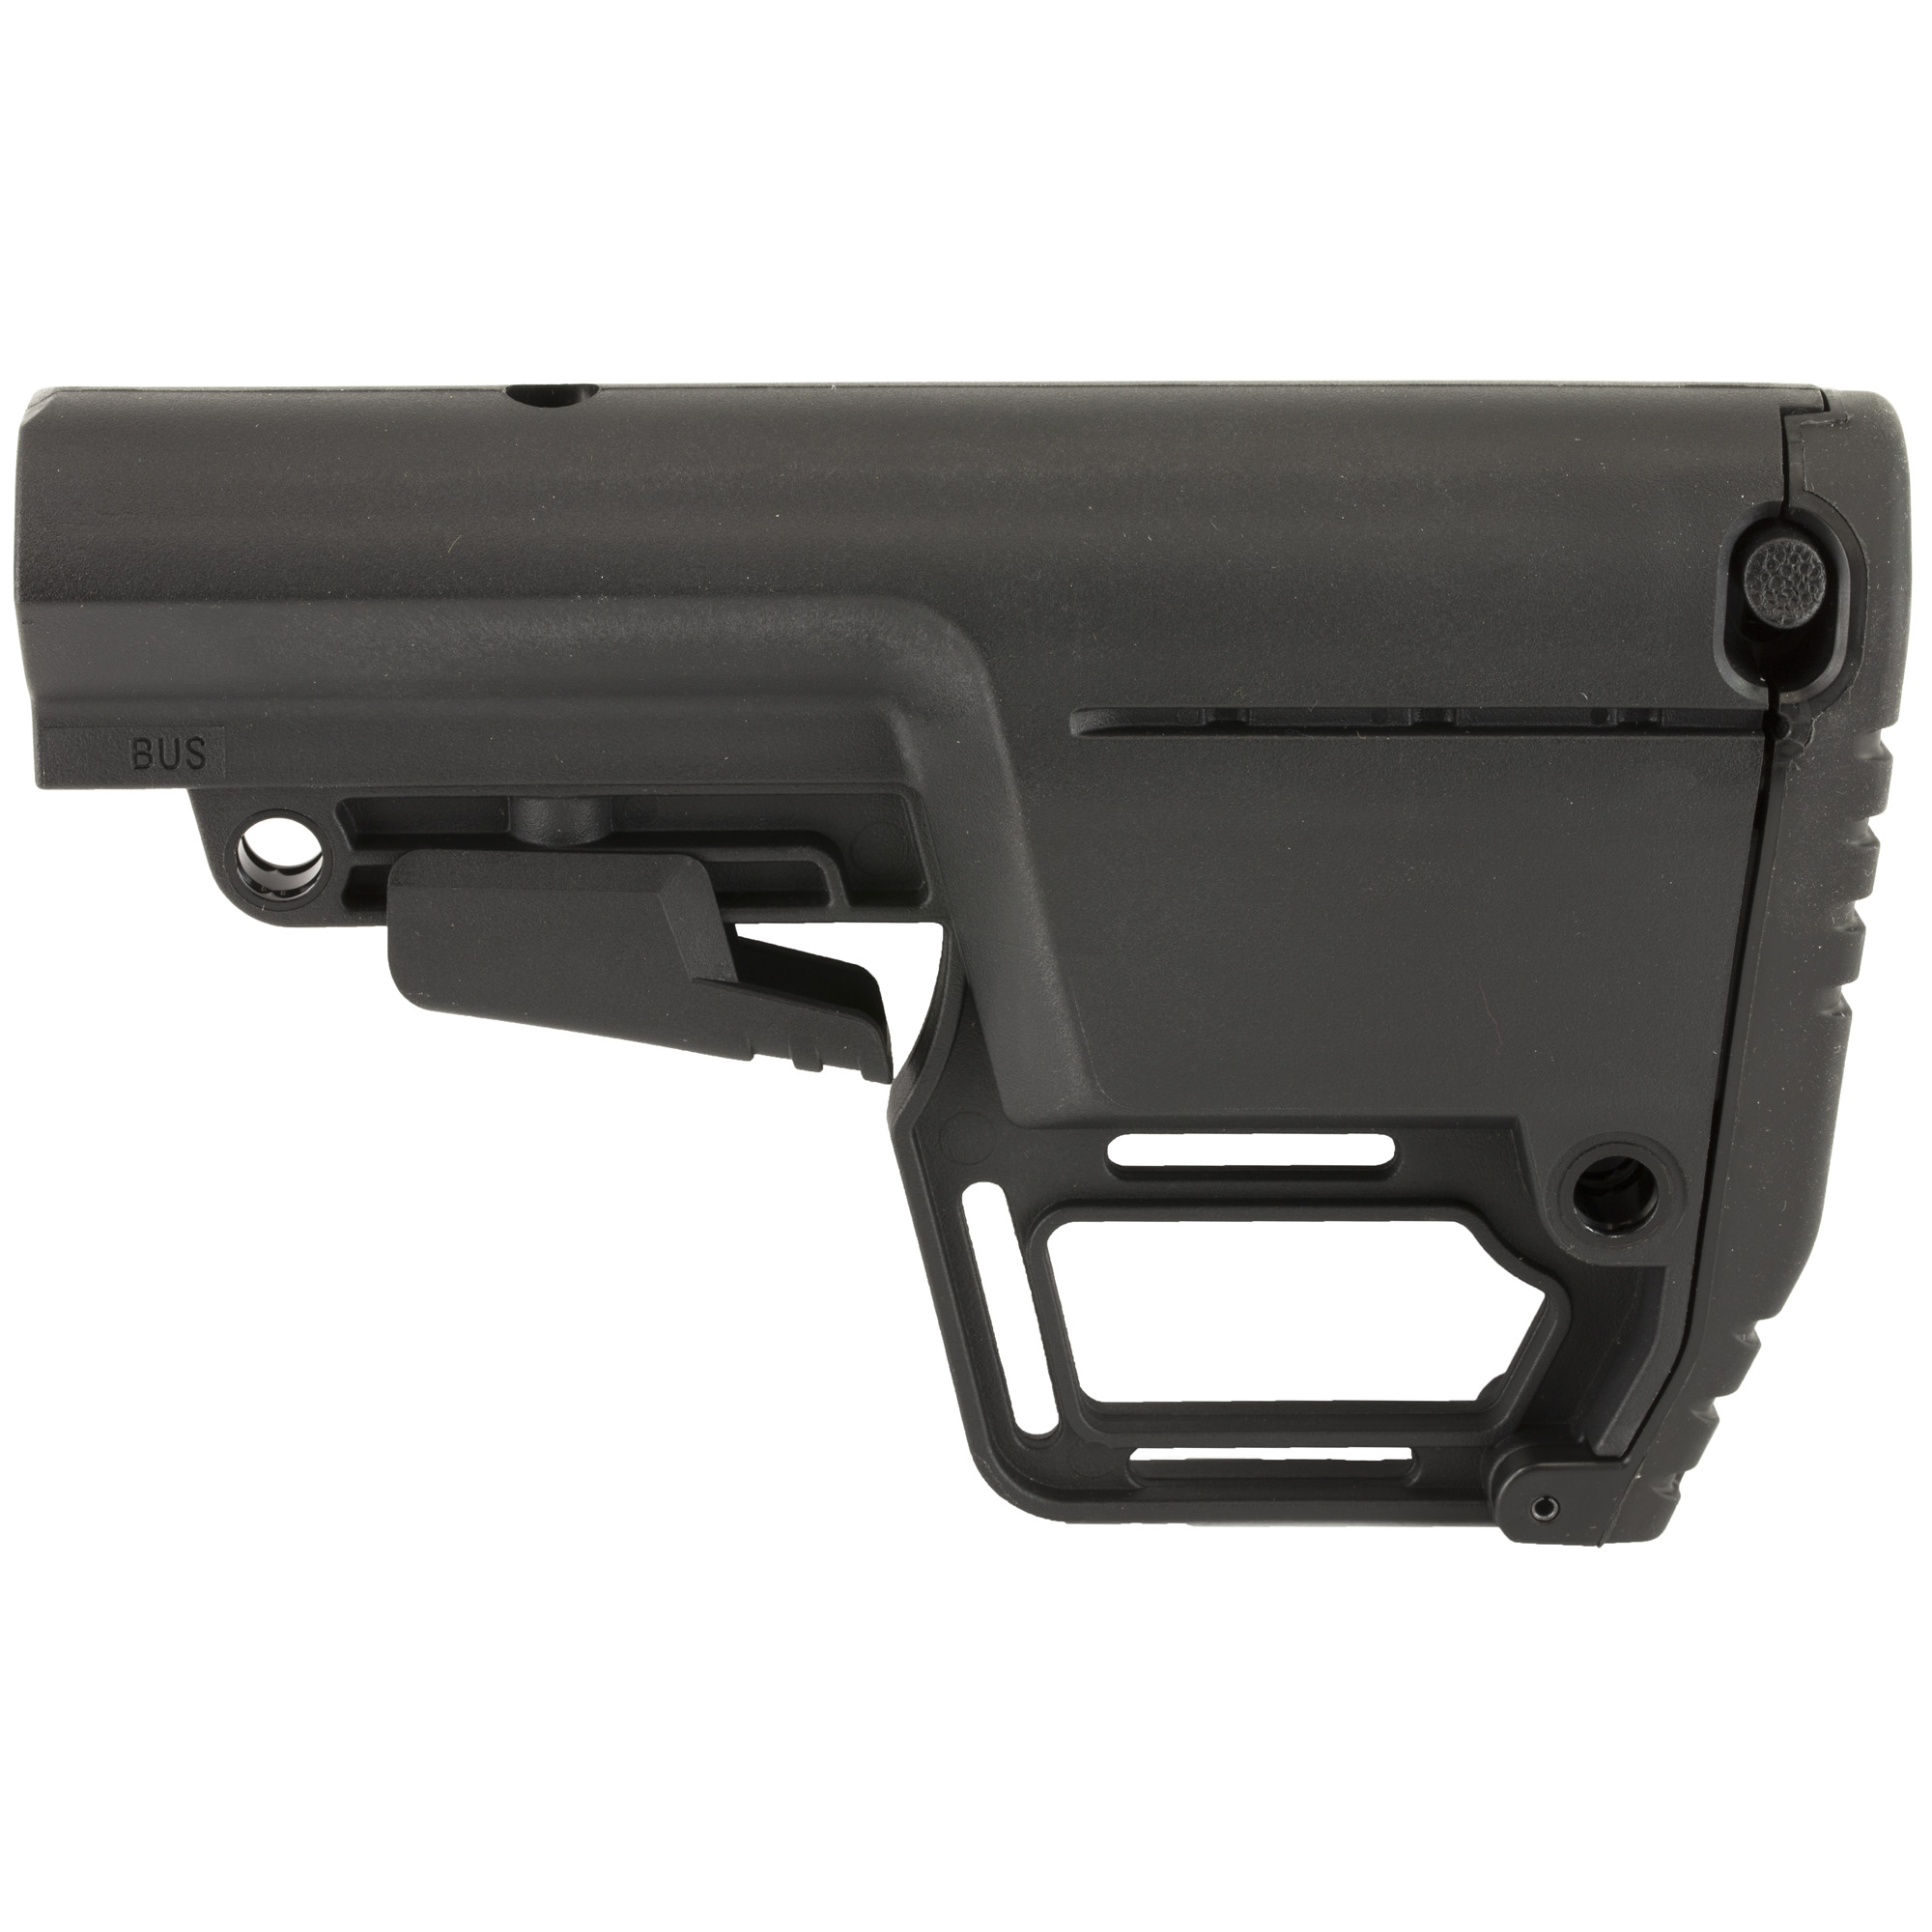 """Mil Spec stock that adapts and changes based on your environment or operational needs"""" from storing additional items in the rear compartment to utilizing custom accessory mounts."""